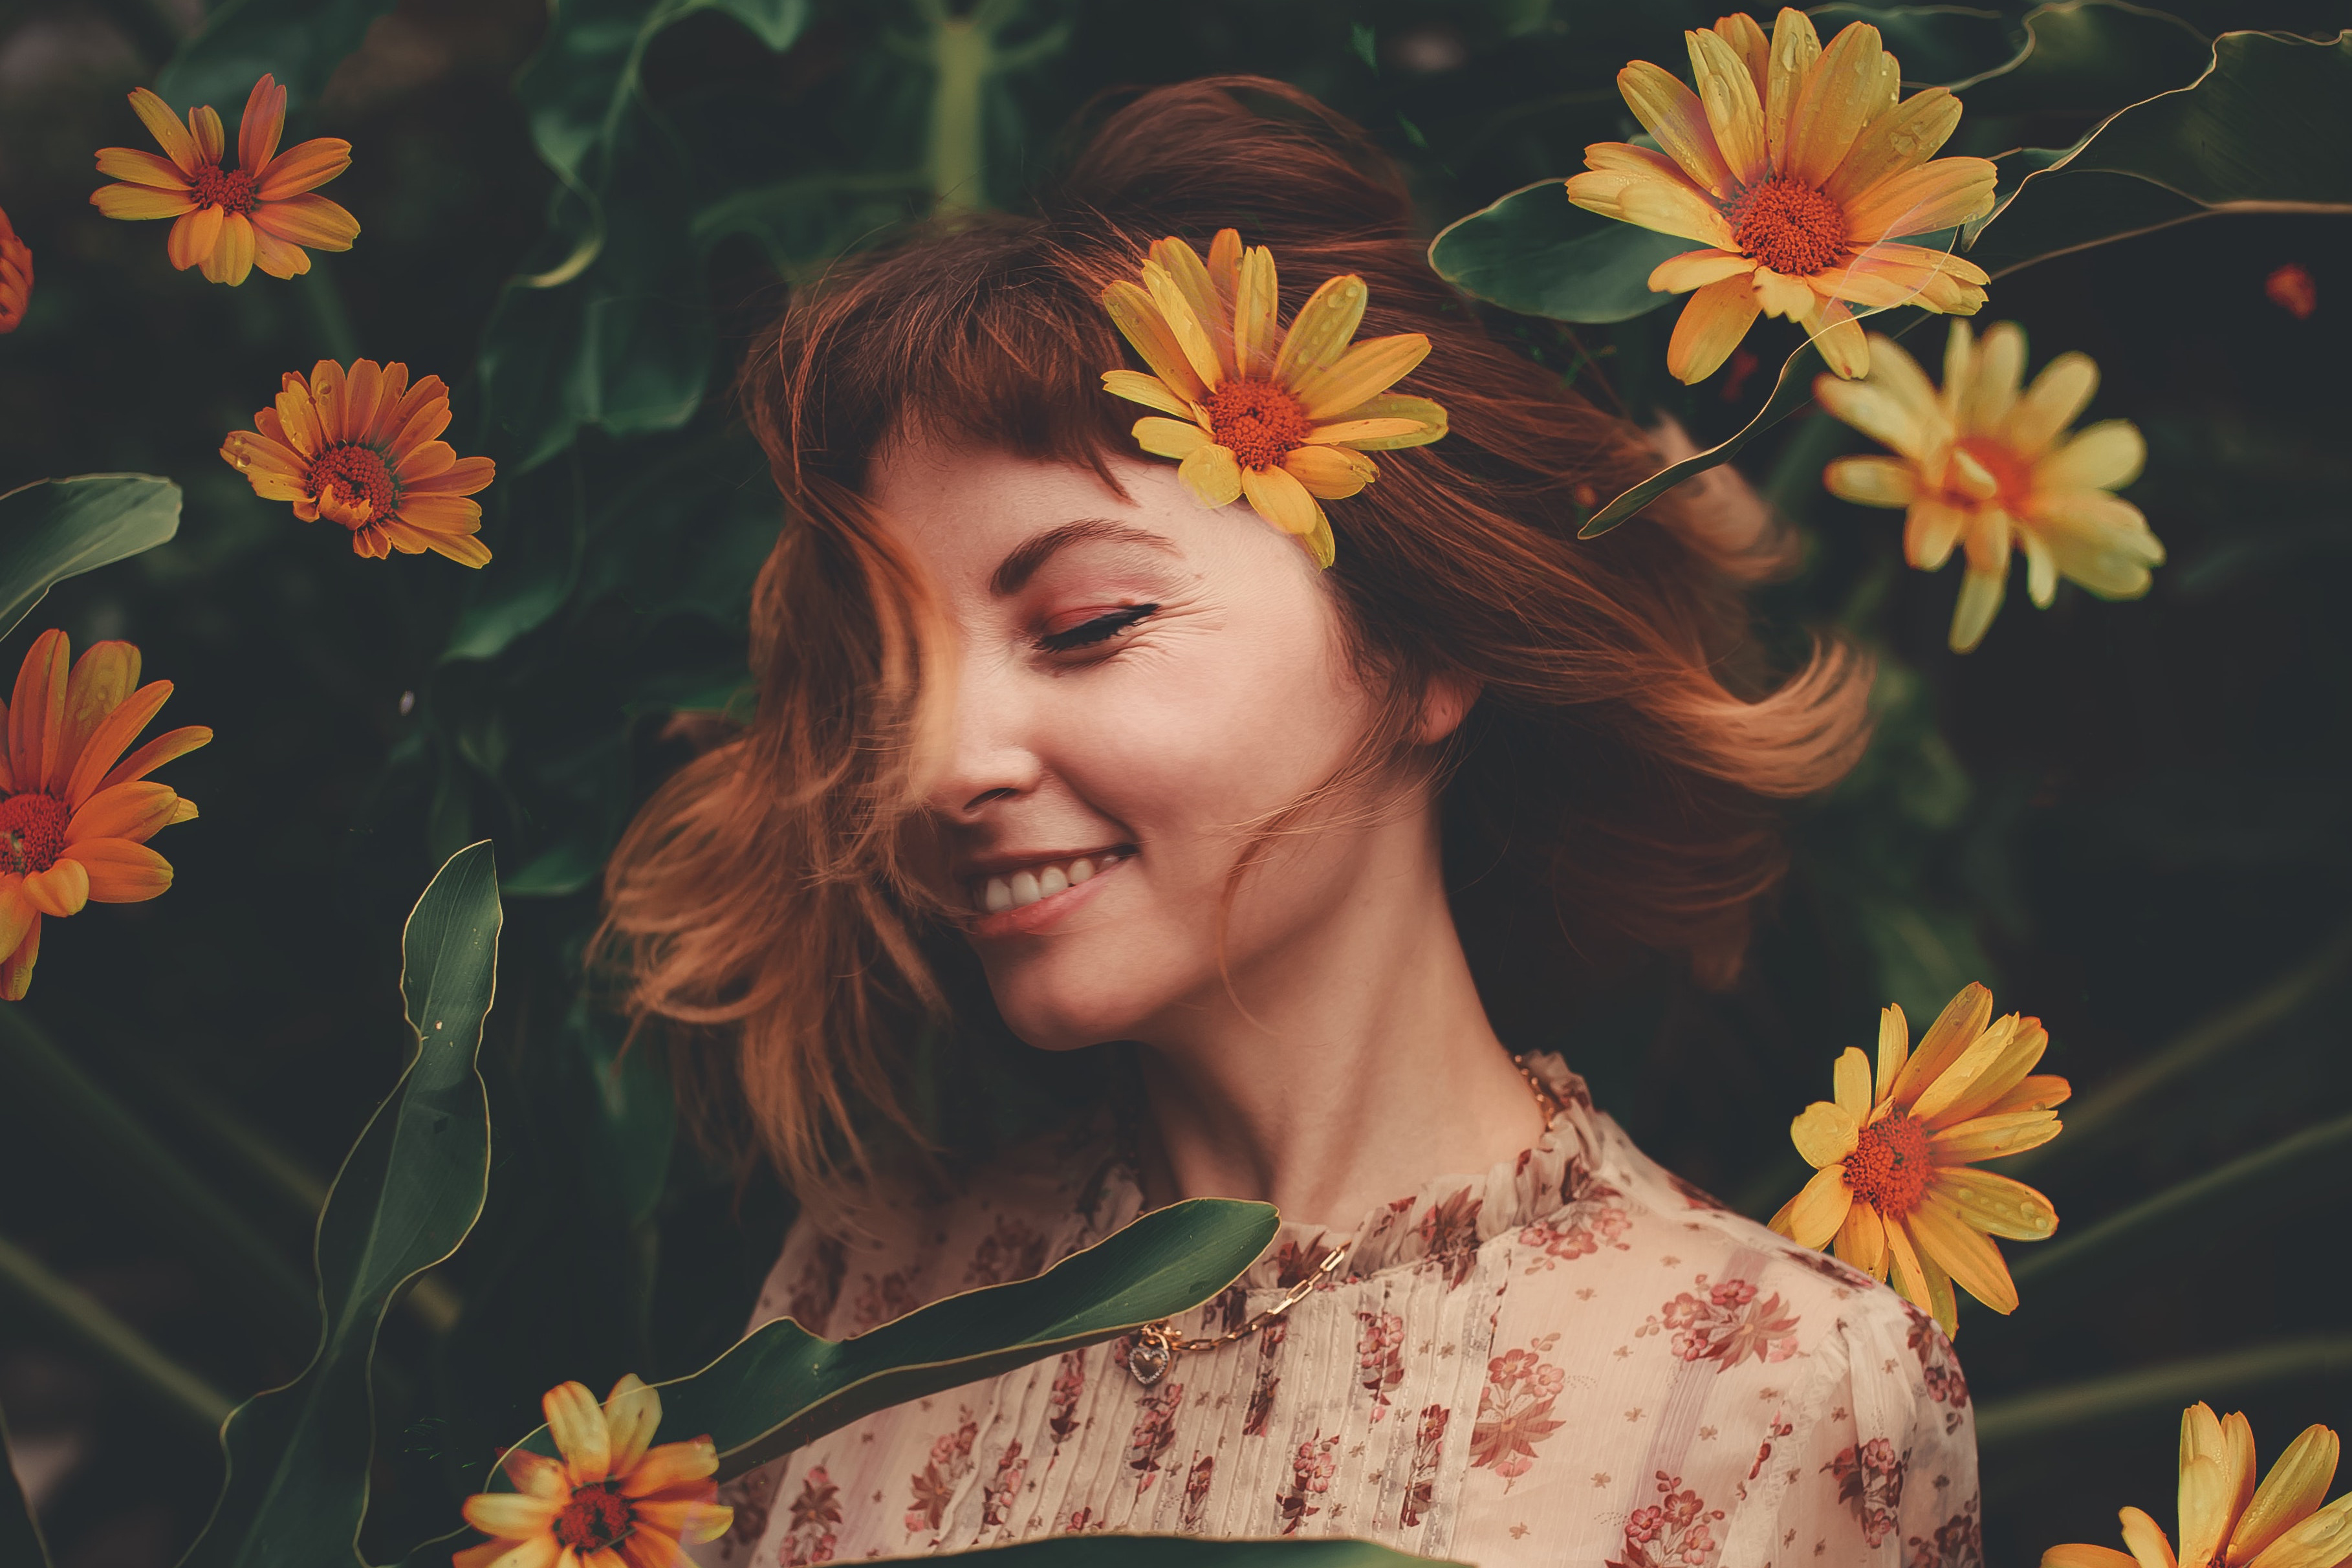 Looking for a natural hair dye? Dye your hair with flowers